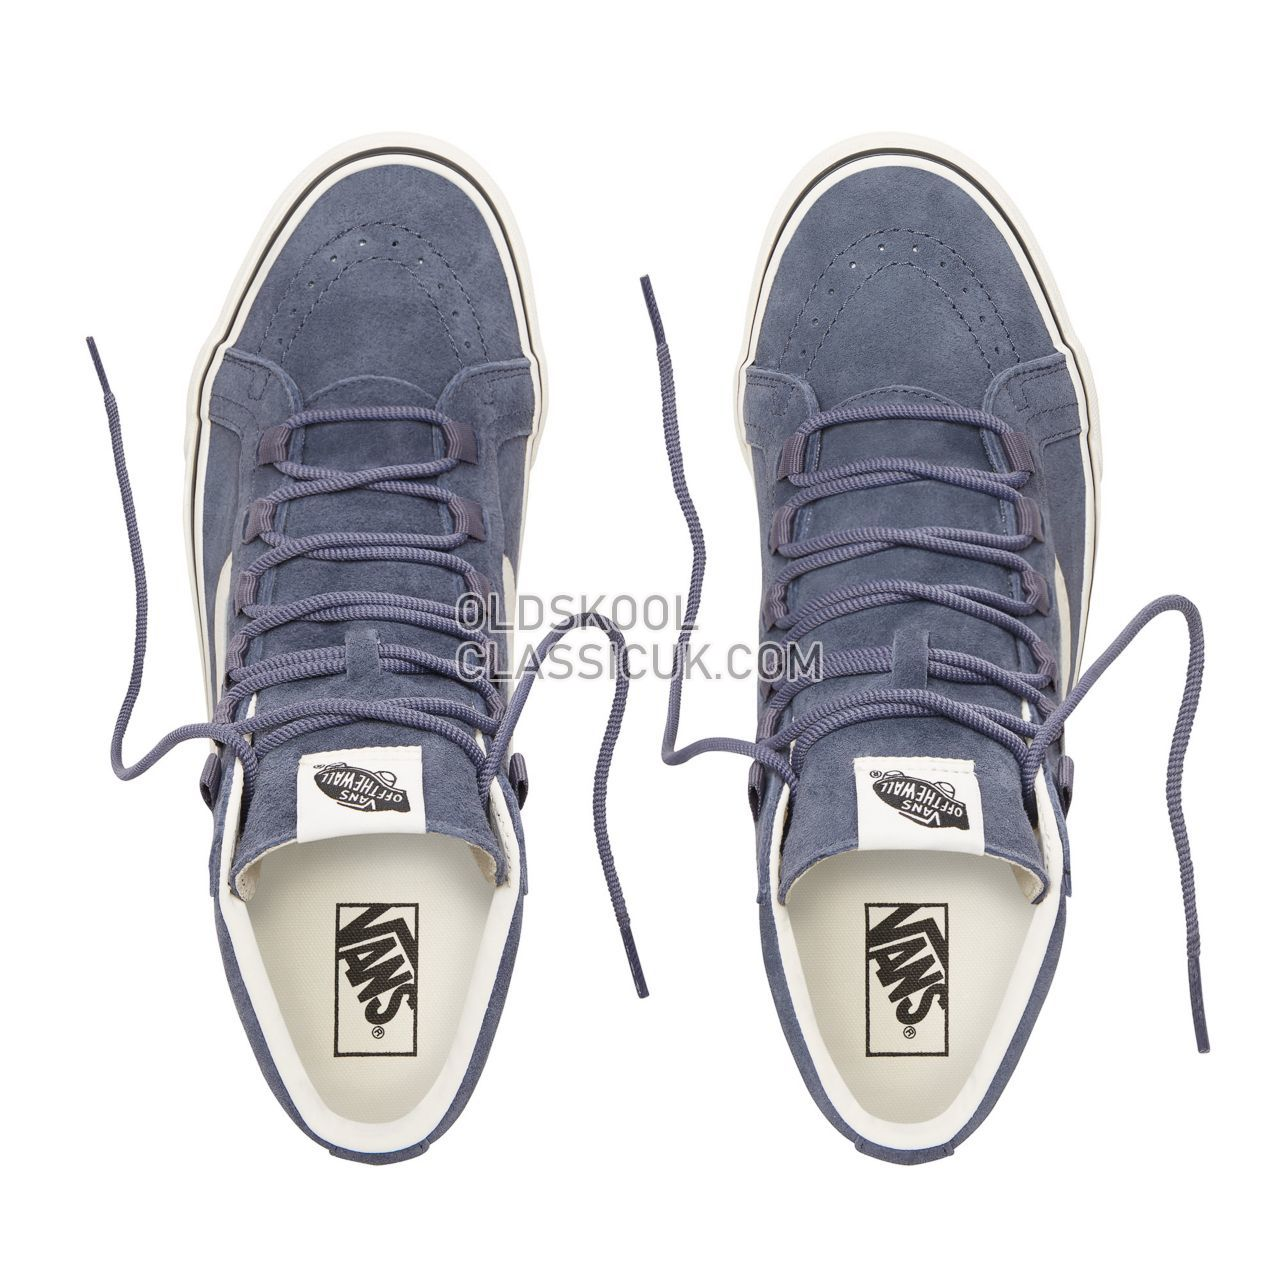 Vans Suede Sk8-Hi Reissue Ghillie Sneakers Mens (Pig Suede) Grisaille/Marshmallow VN0A3ZCHUQR Shoes